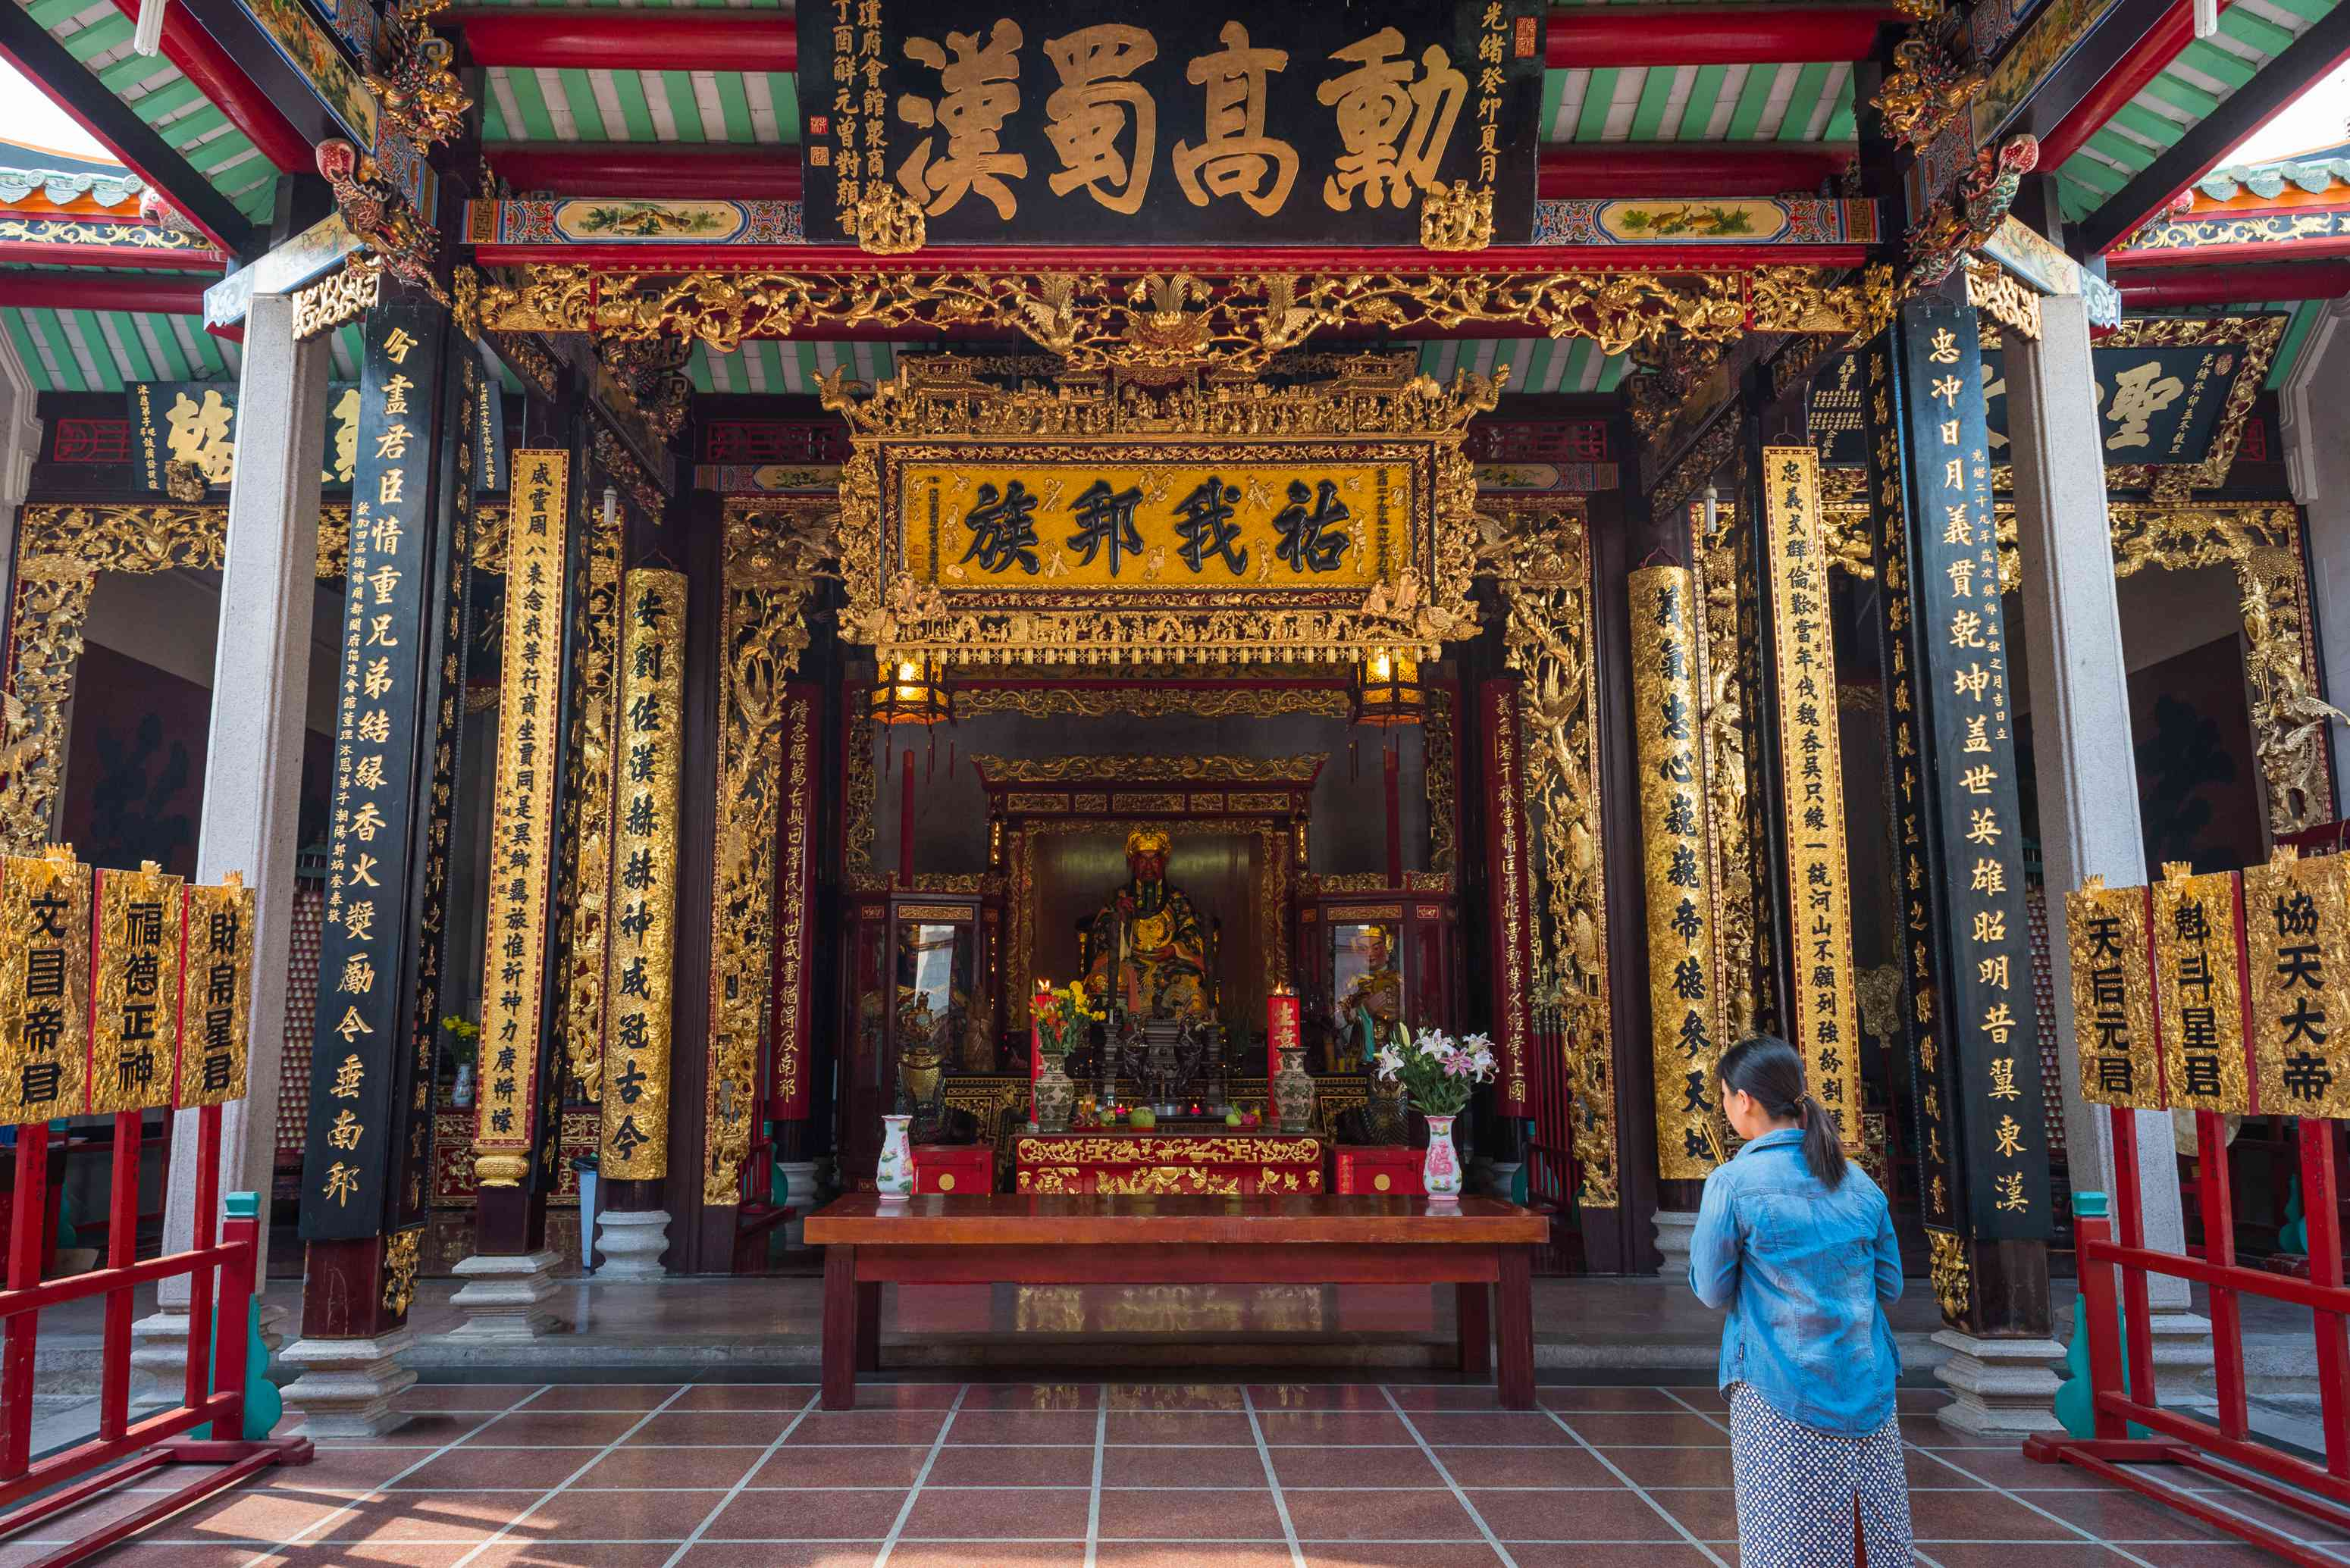 A Chinese temple in Cholon, Ho Chi Minh City's Chinatown